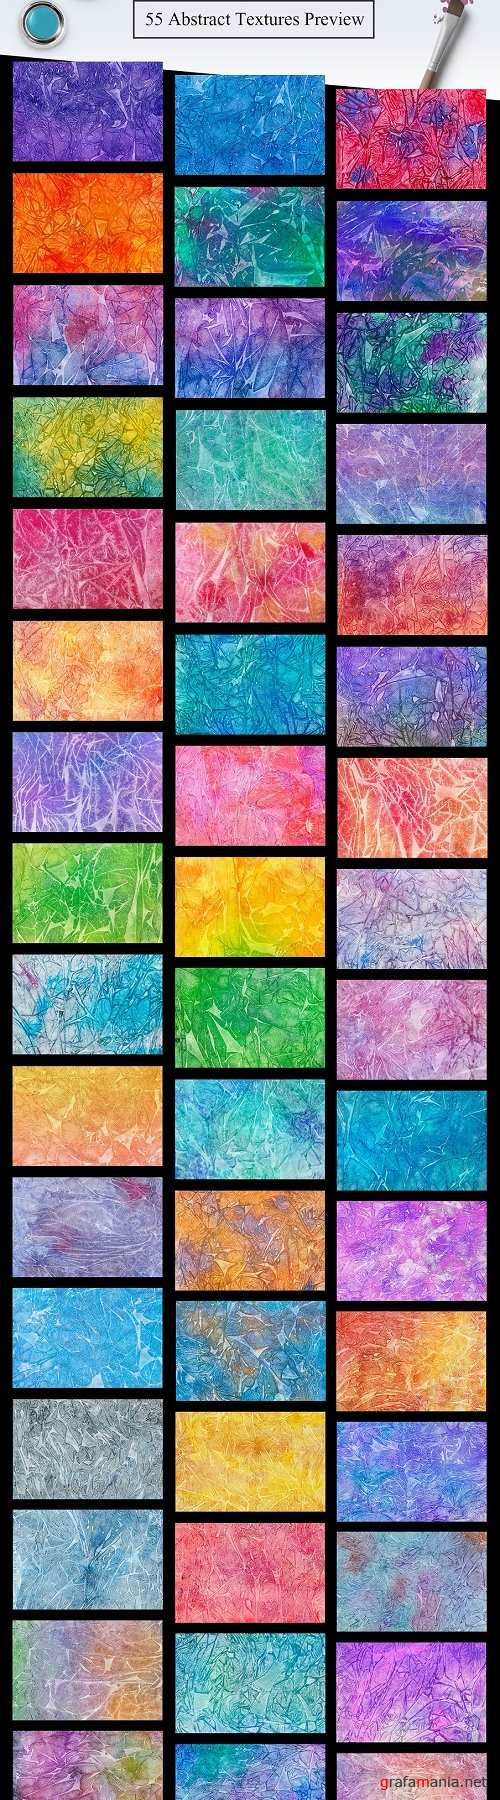 55 Watercolor Abstract Textures - 2199797